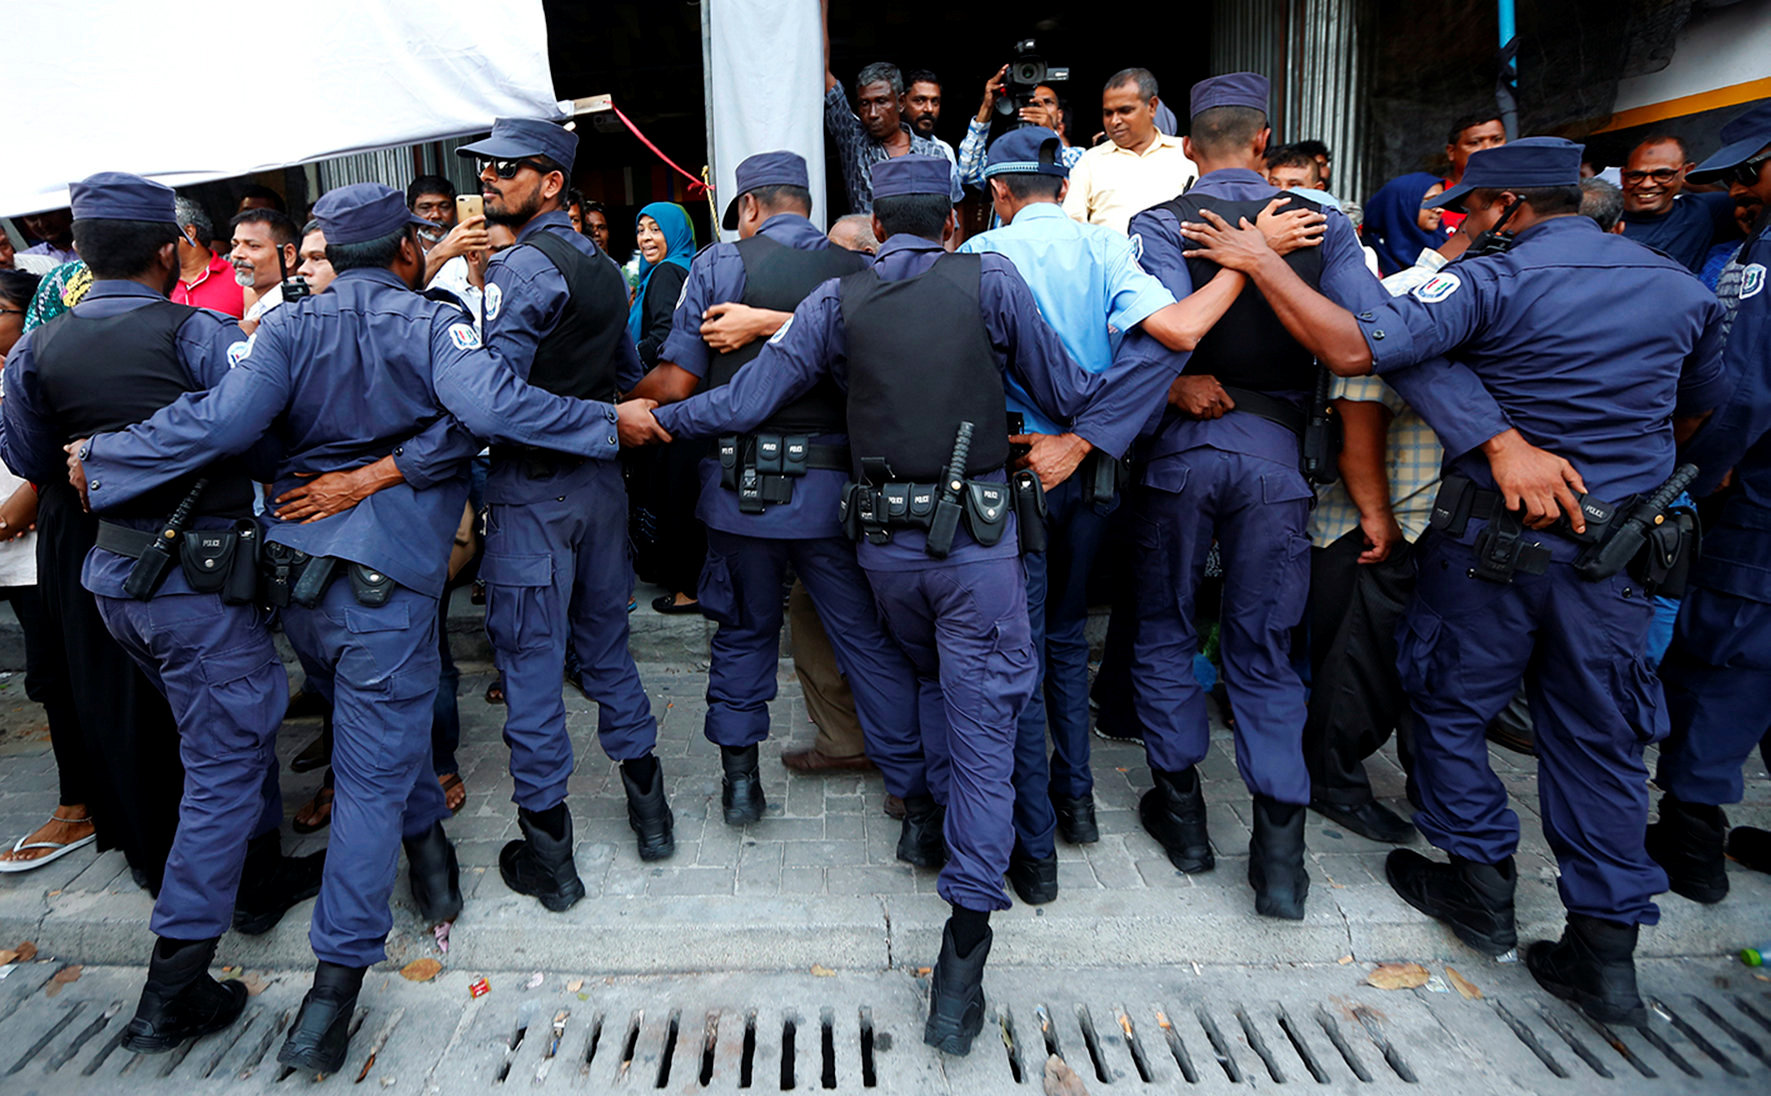 Maldives: Prosecutor Calls Extension of State of Emergency 'Unconstitutional'